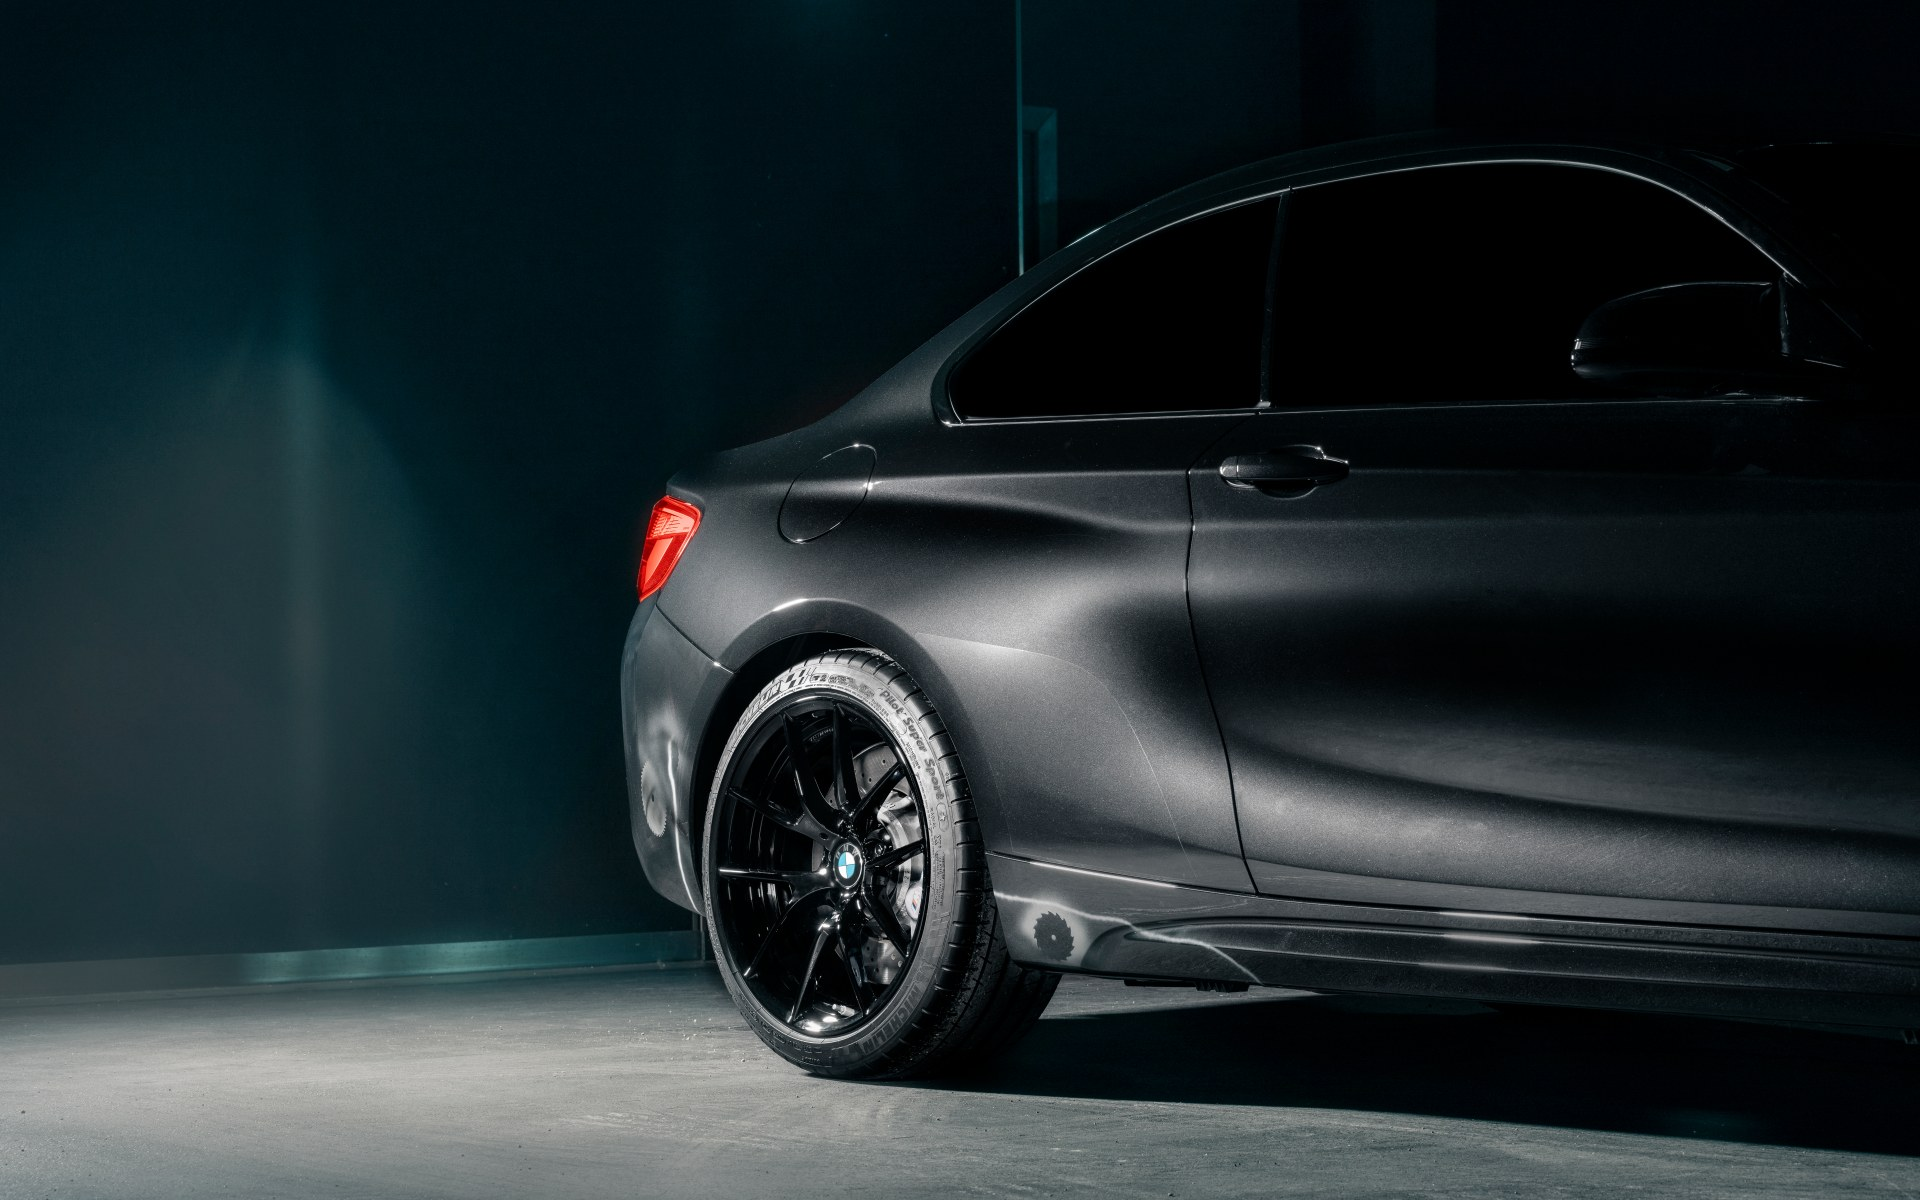 BMW M2 Edition designed by FUTURA 2000 Wallpaper